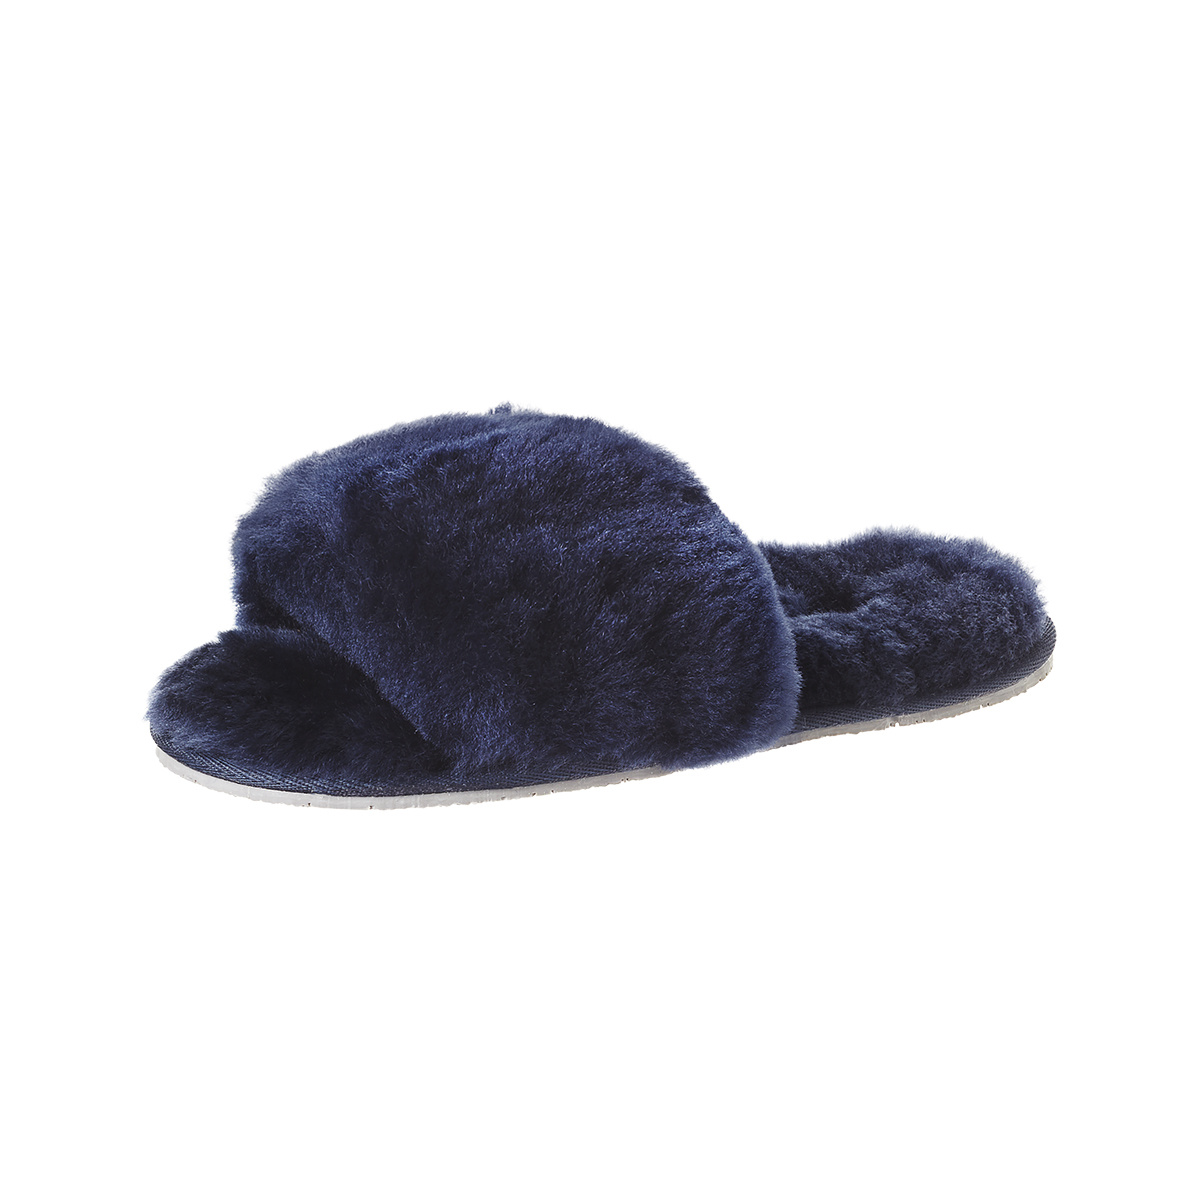 70f3f108e SOXO Women's slippers sheepskin navy blue | Slippers \ Classic NEW ARRIVALS  WOMEN \ Slippers | Wholesale socks, slippers